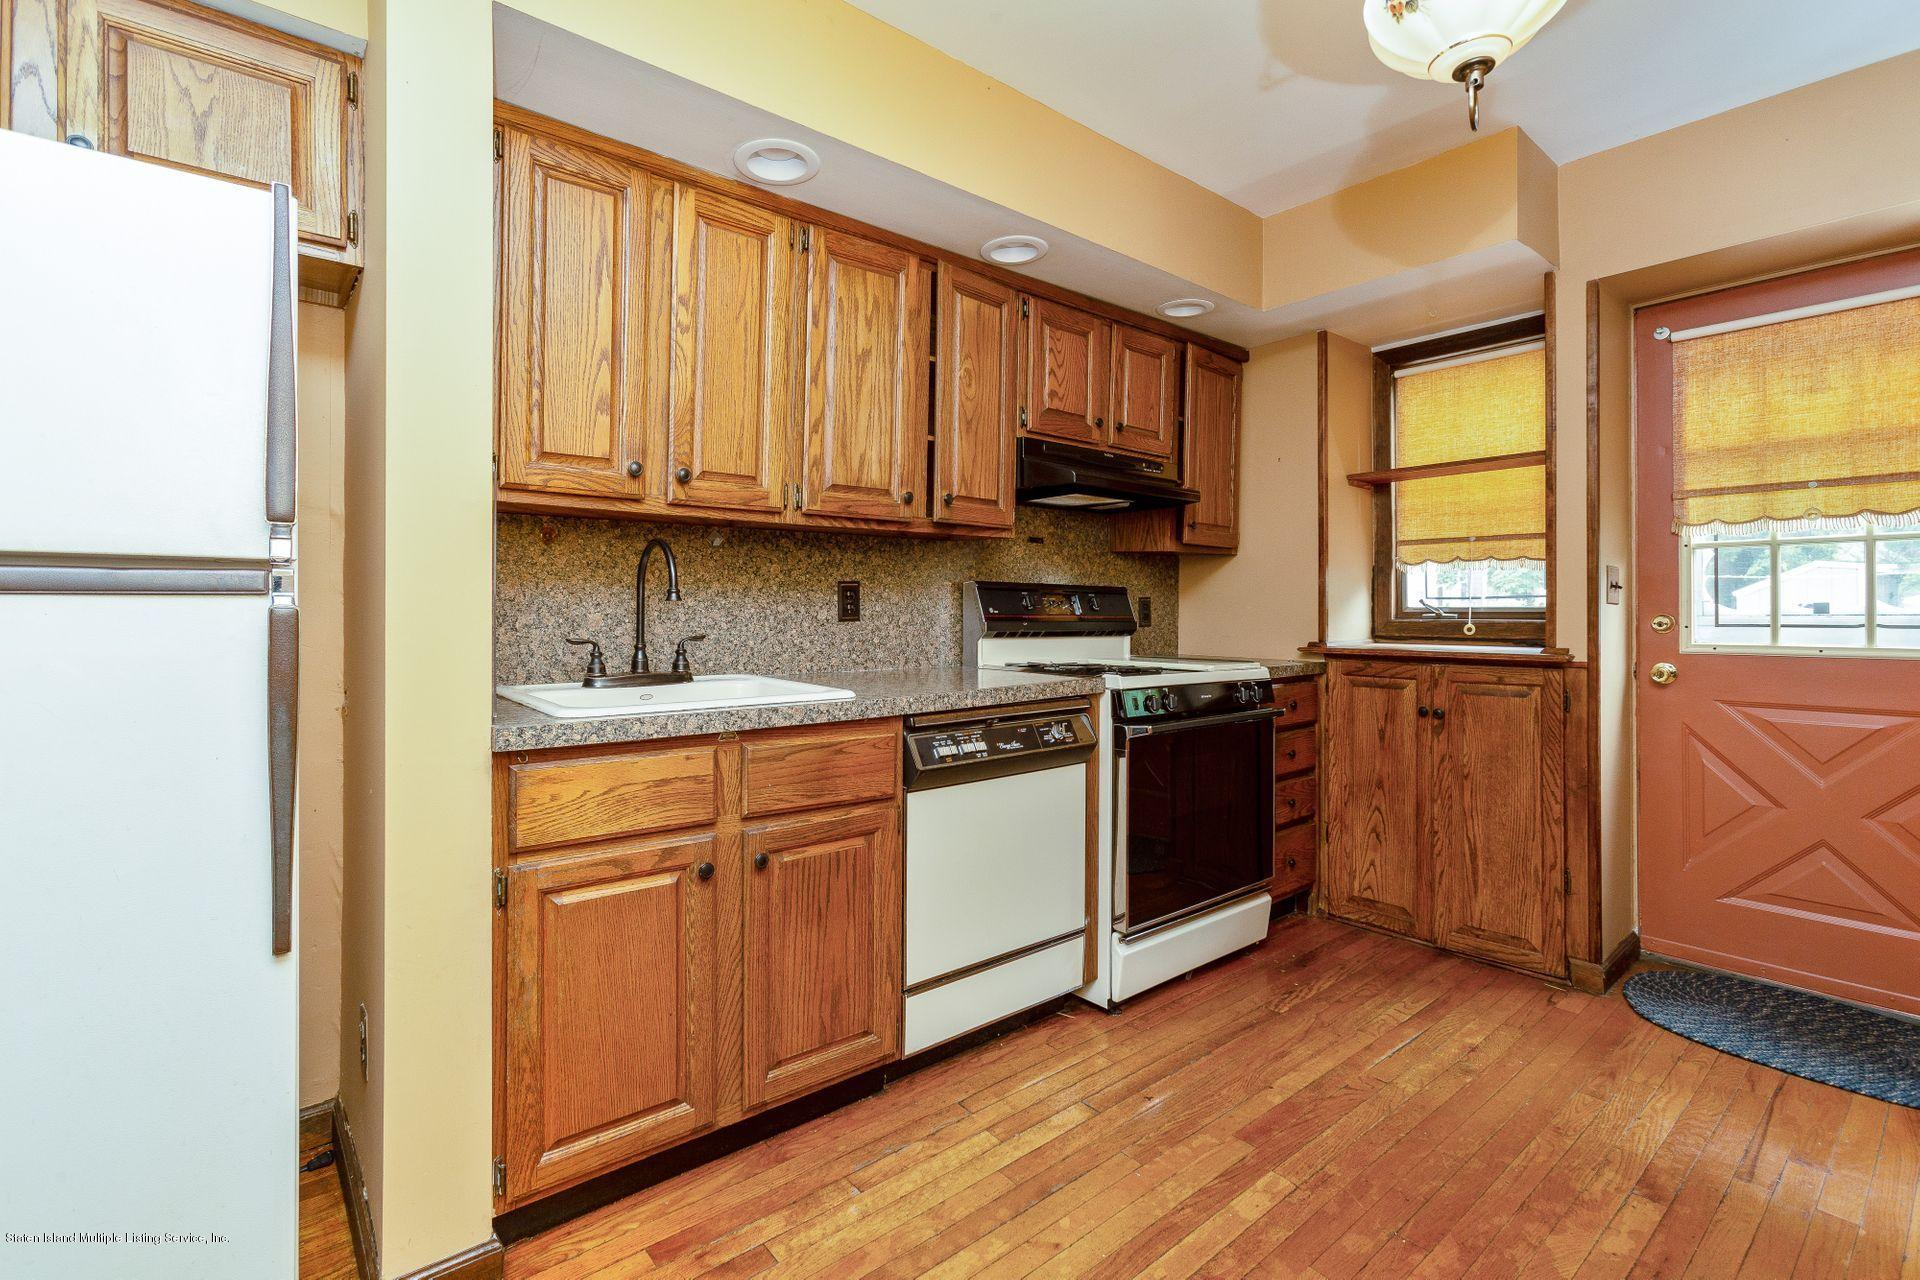 Single Family - Attached 83 Chester Avenue  Brooklyn, NY 11218, MLS-1134106-4